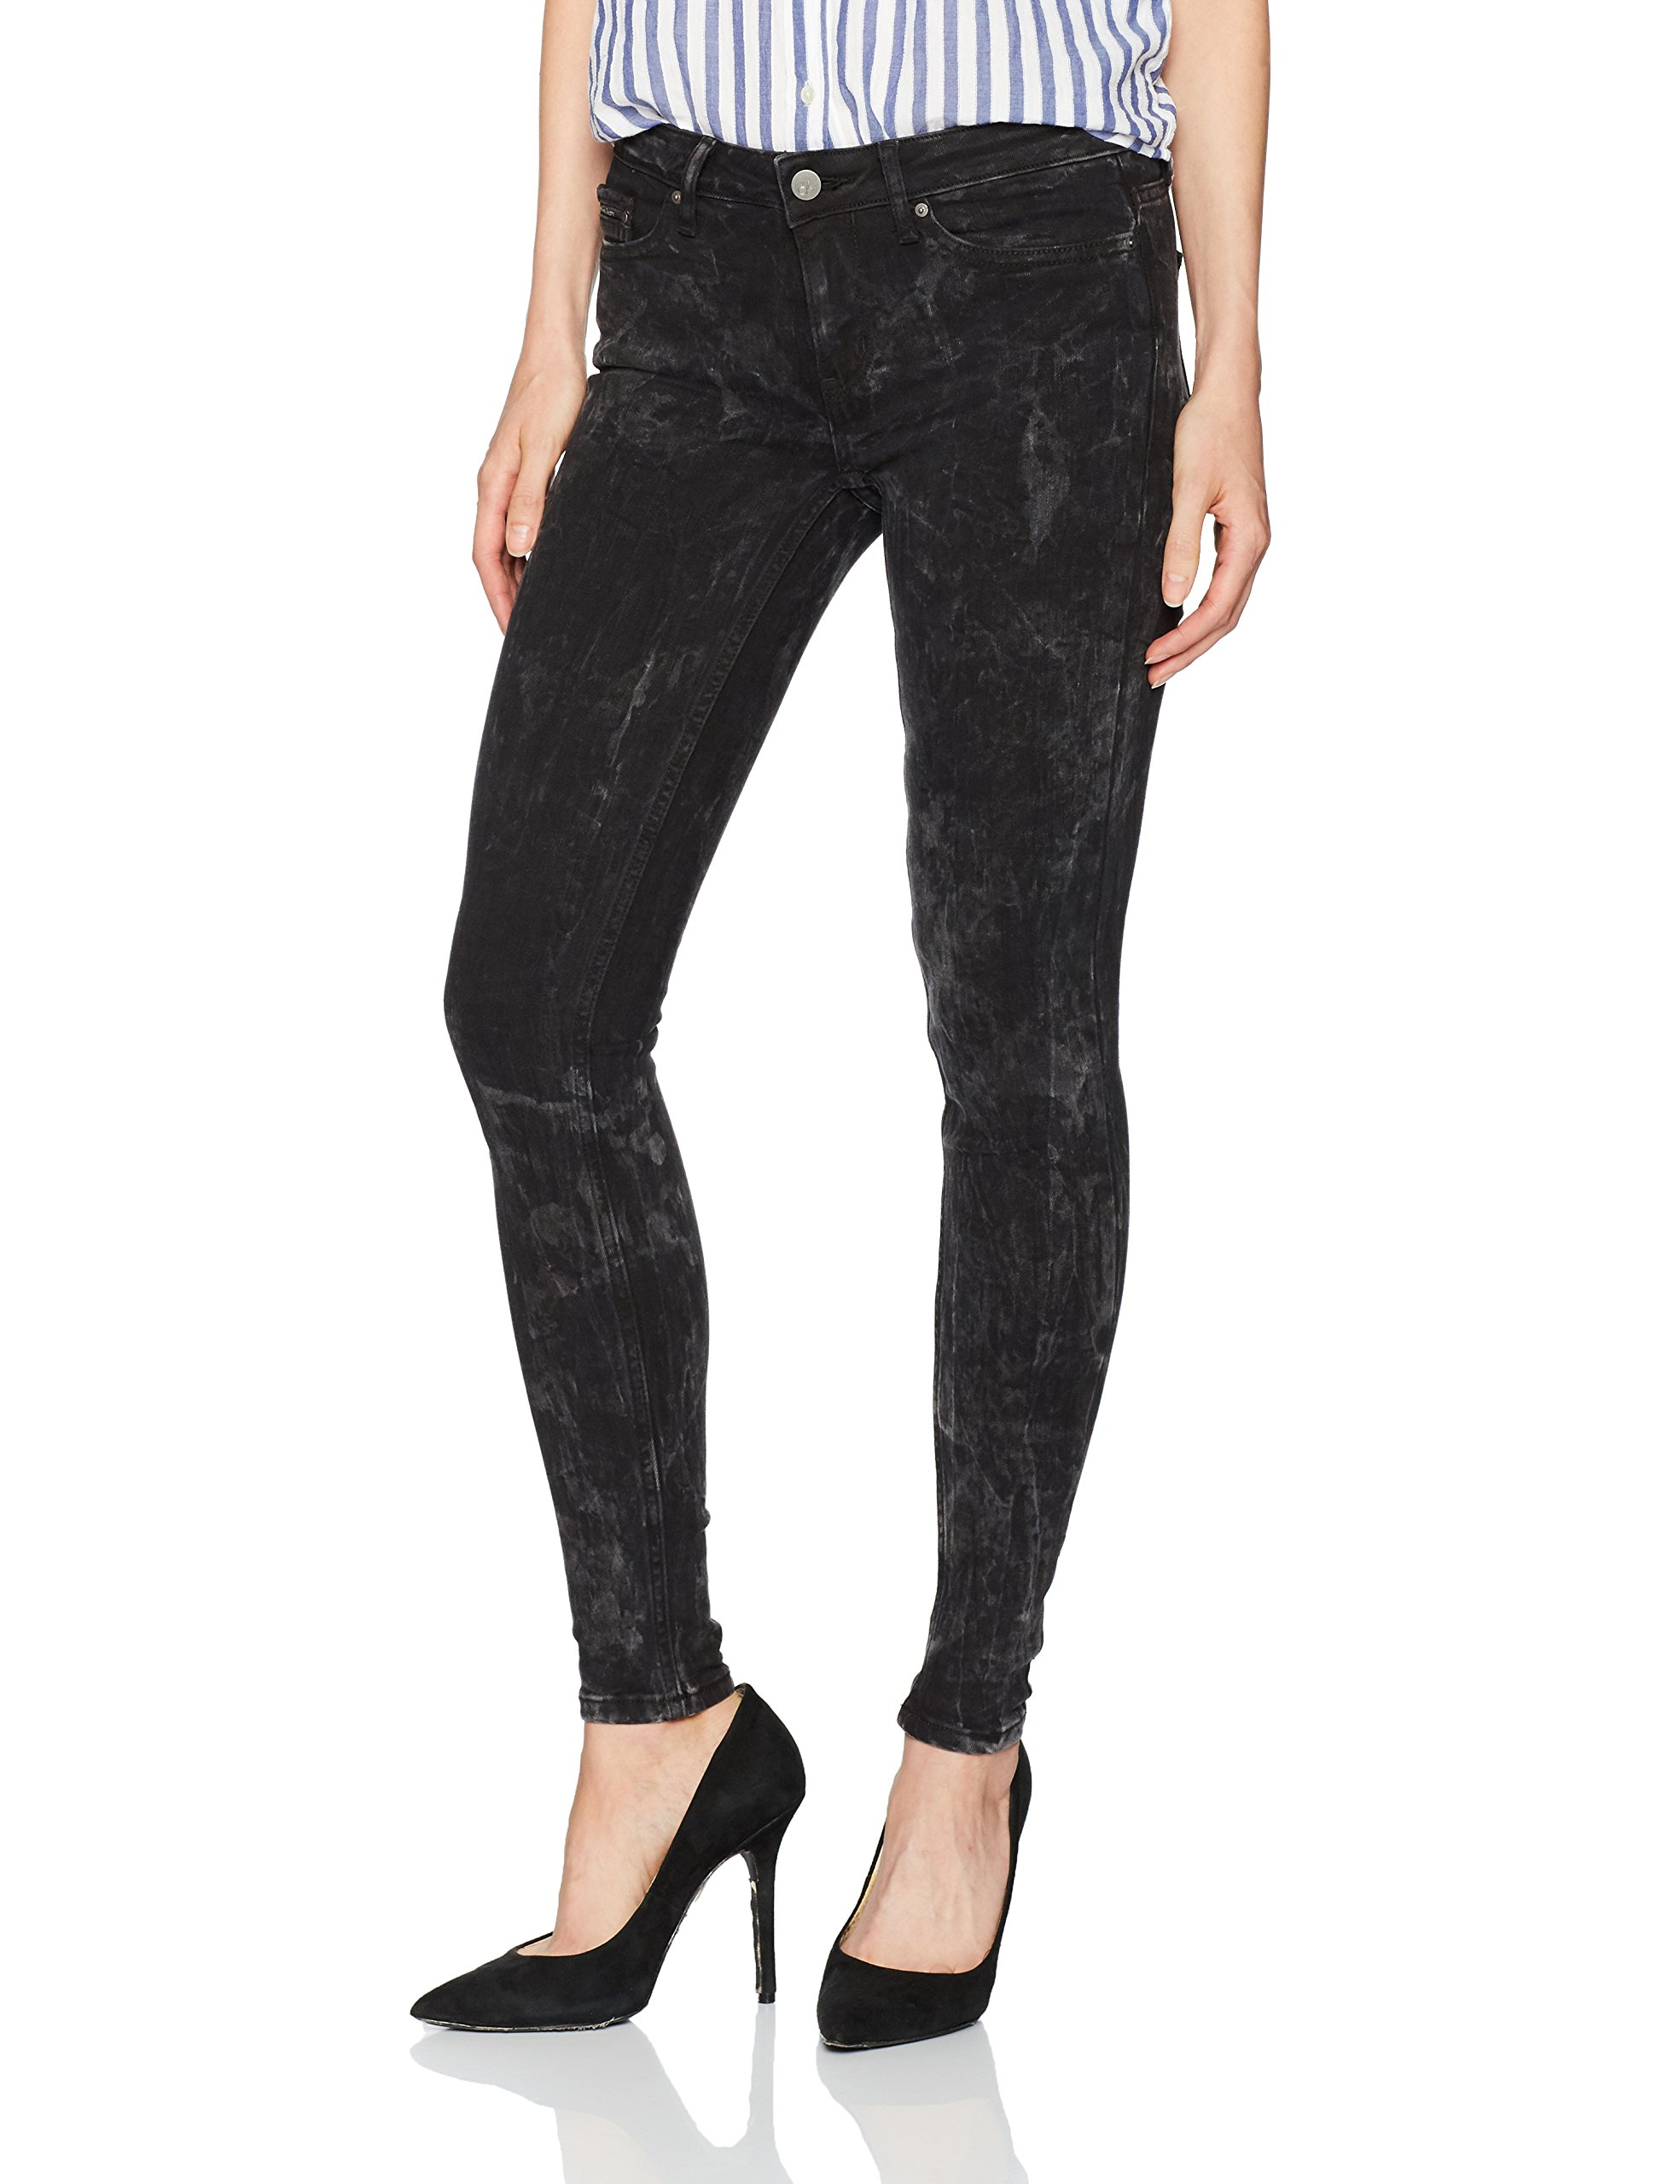 Calvin Klein Jeans Women's Legging Jean, Black Crush, 31